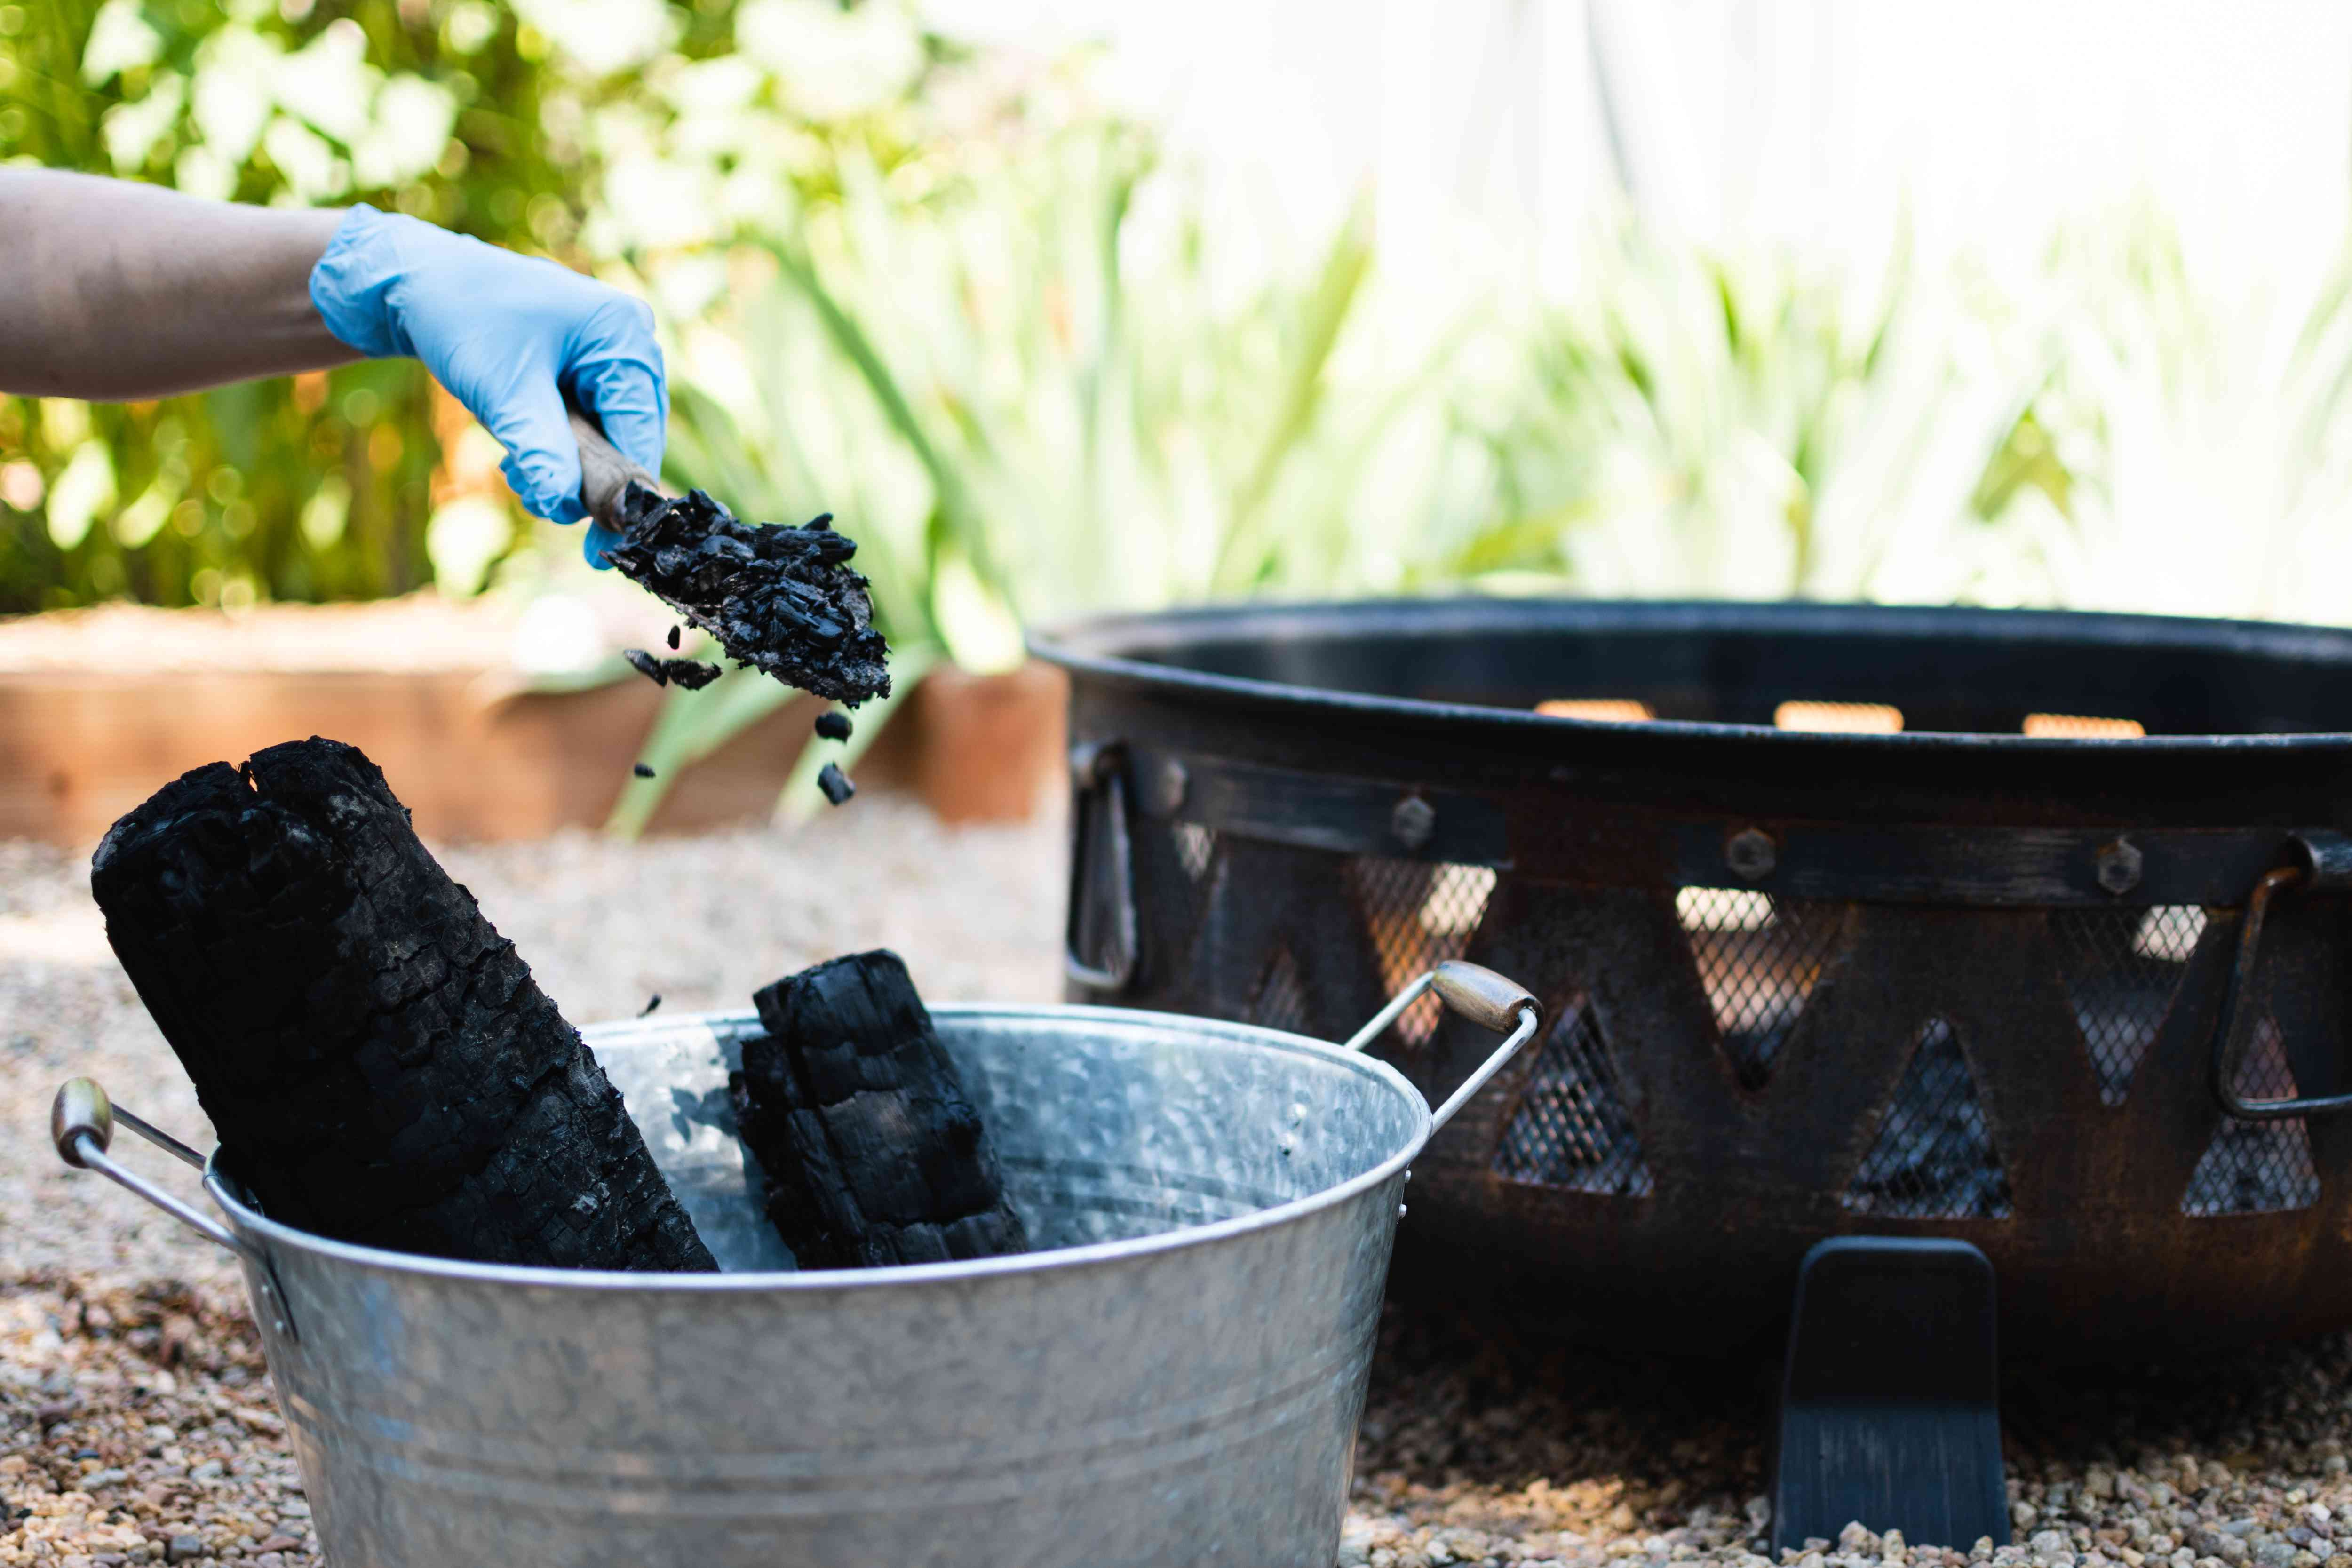 Ashes being removed from metal fire pit and placed in steel bucket